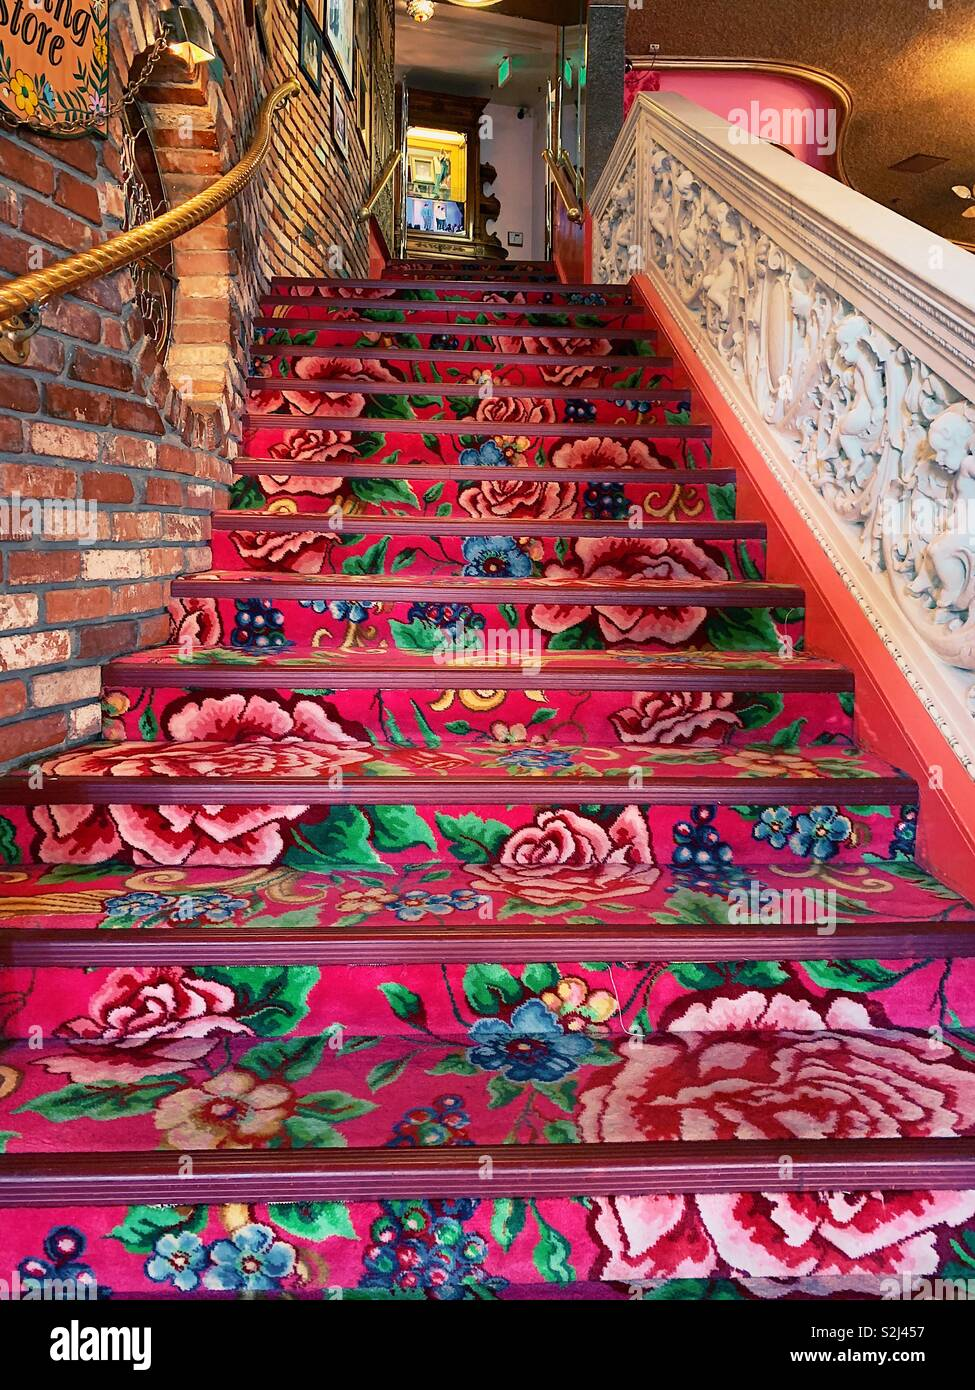 Wild pink floral carpet and staircase at the Madonna Inn in San Luis Obispo California - Stock Image